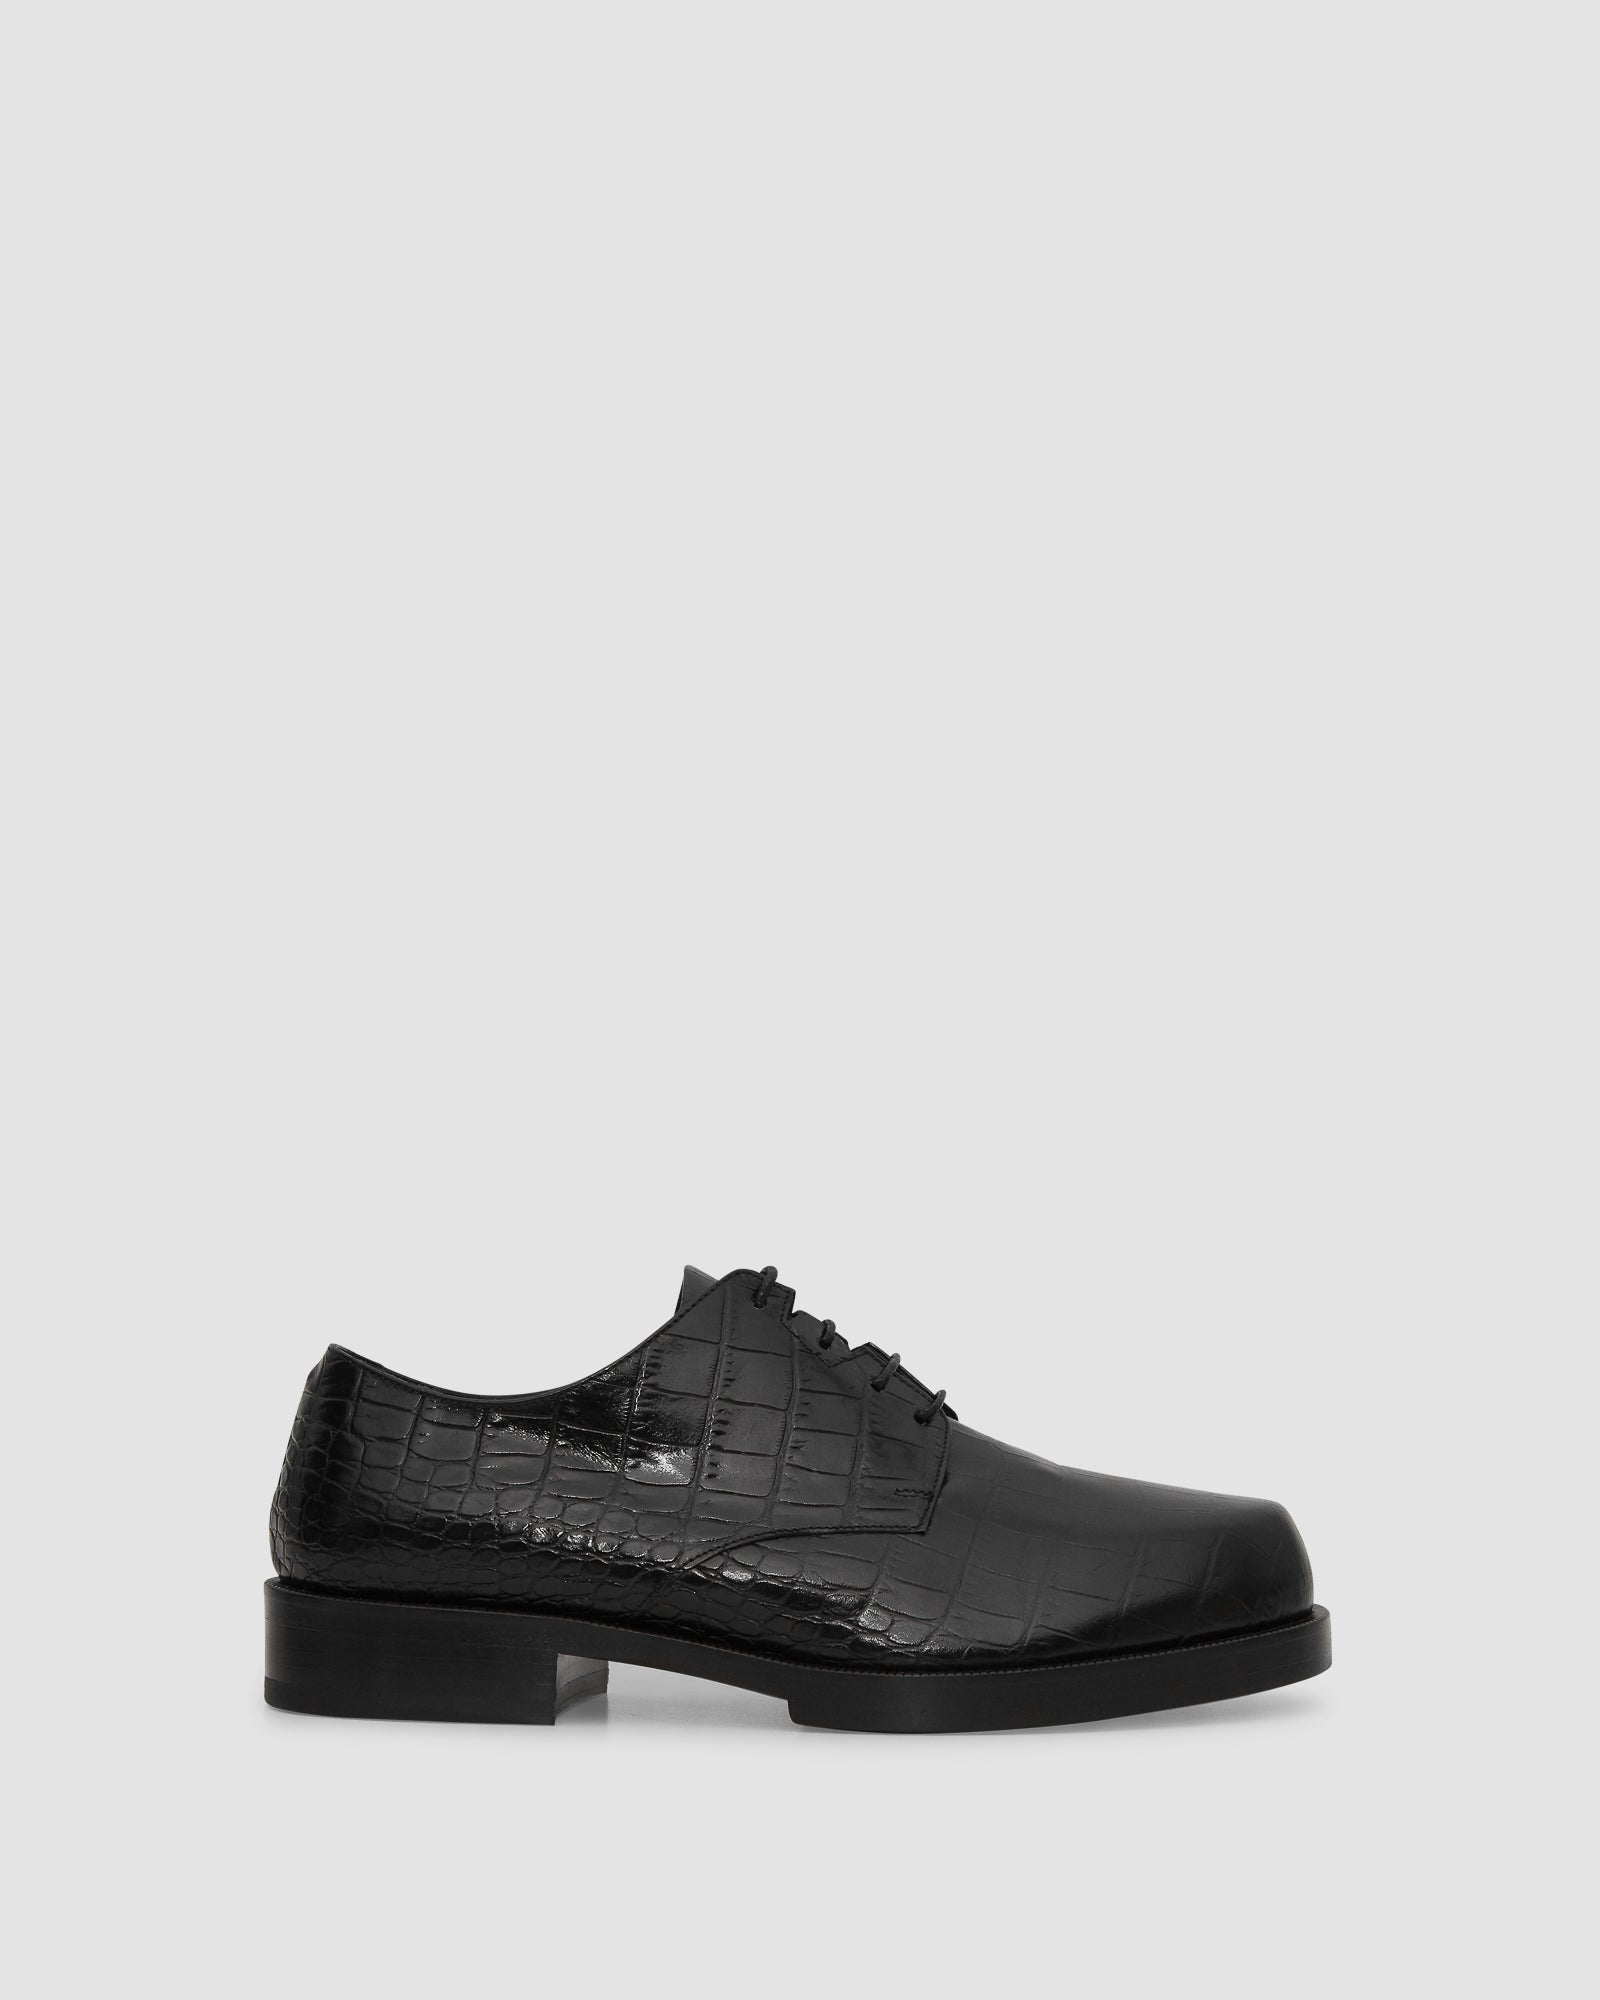 1017 ALYX 9SM | LACE UP DERBY | Shoe | Black, Google Shopping, Man, S20, S20 Drop II, Shoes, SNEAKERS, UNISEX, Woman